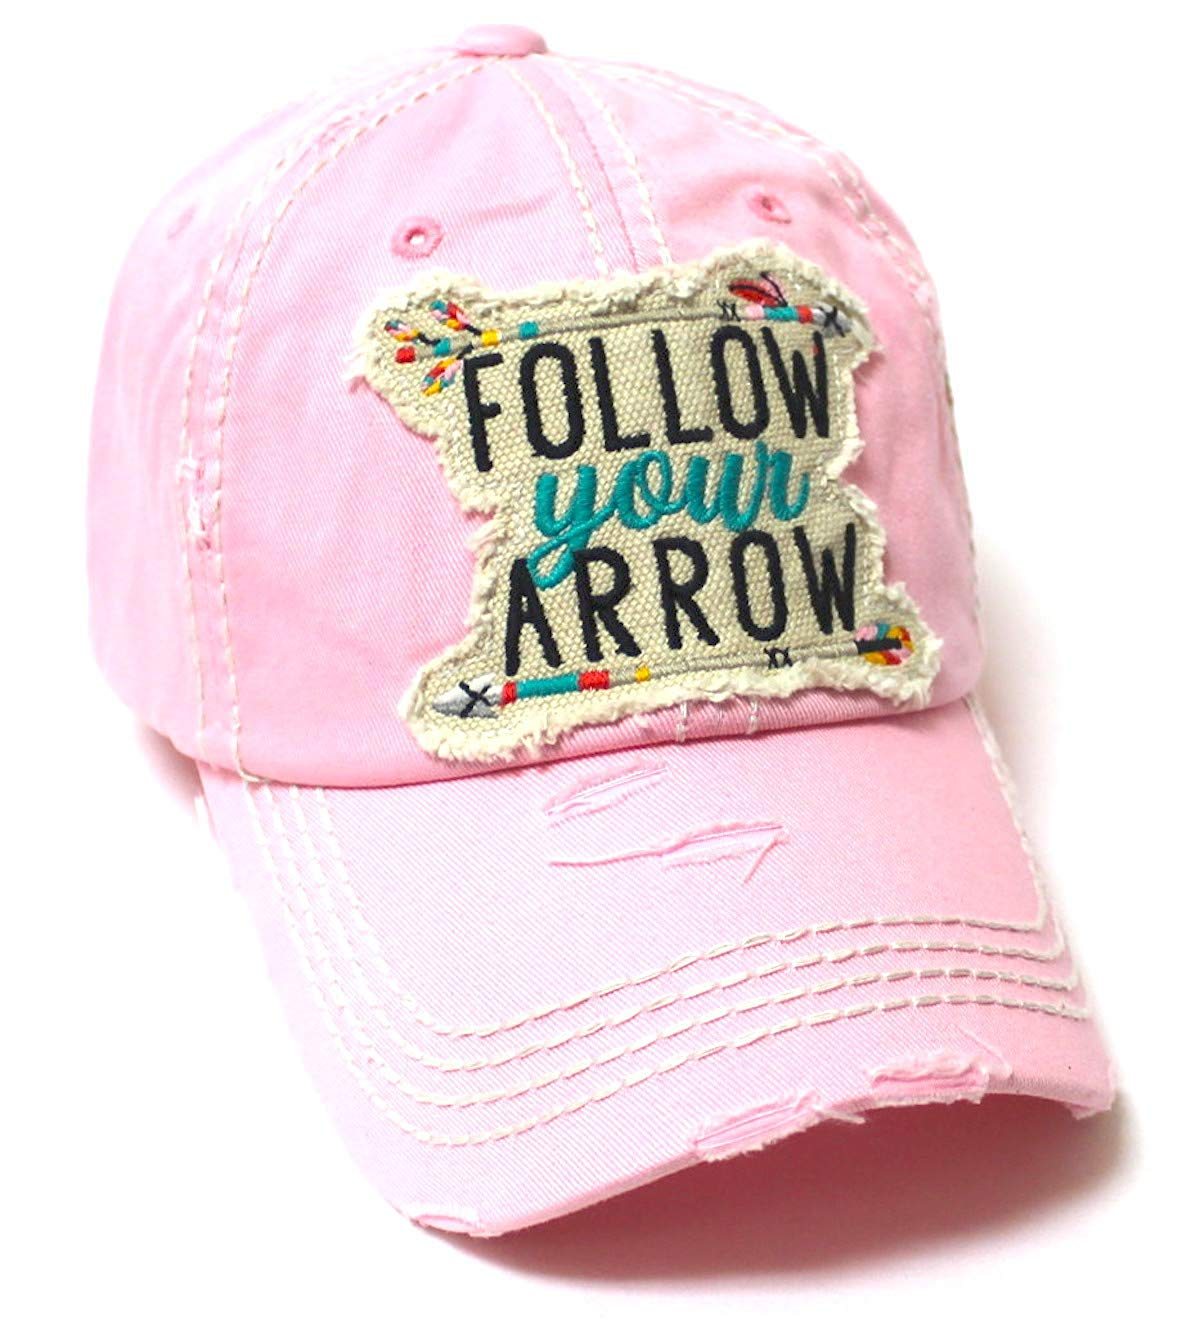 Camping Ballcap Follow Your Arrow Patch Embroidery Adjustable Baseball Hat, Princess Pink - Caps 'N Vintage